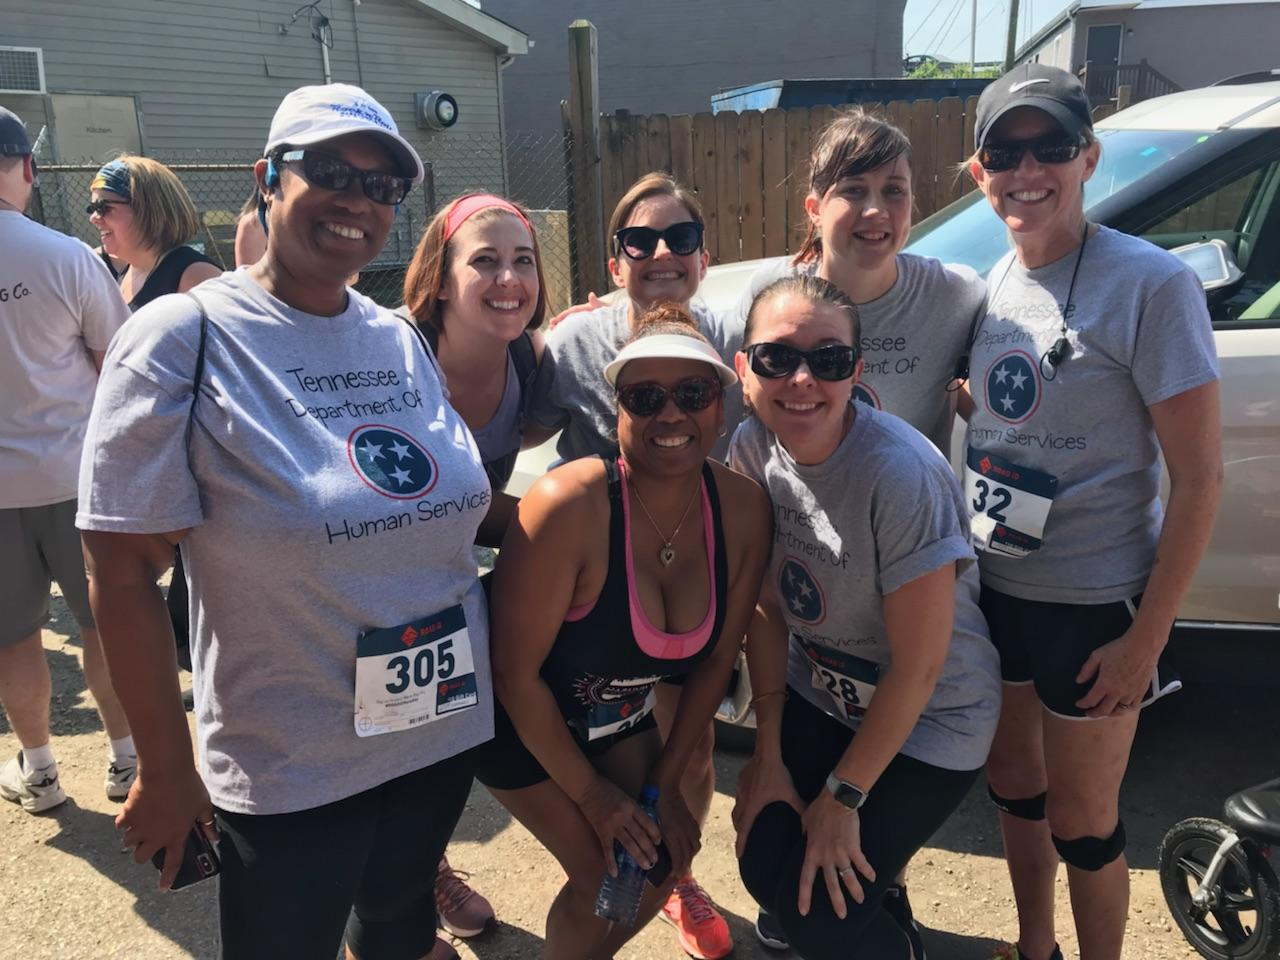 Employees from the Department of Human Services participated in a run for the Dream Center.